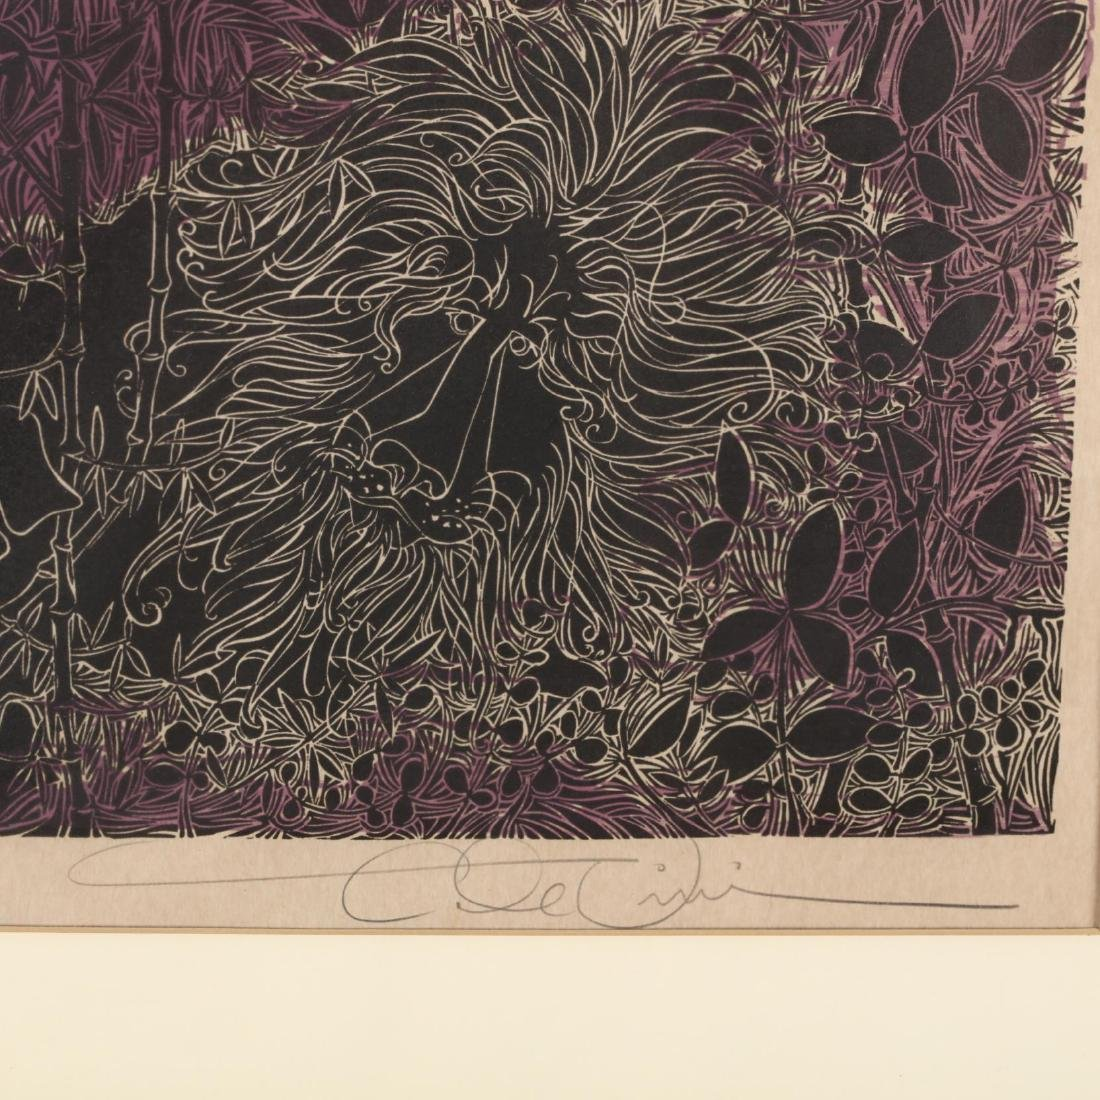 Two 20th Century Woodblock Prints - Elizabeth Wolf and - 3